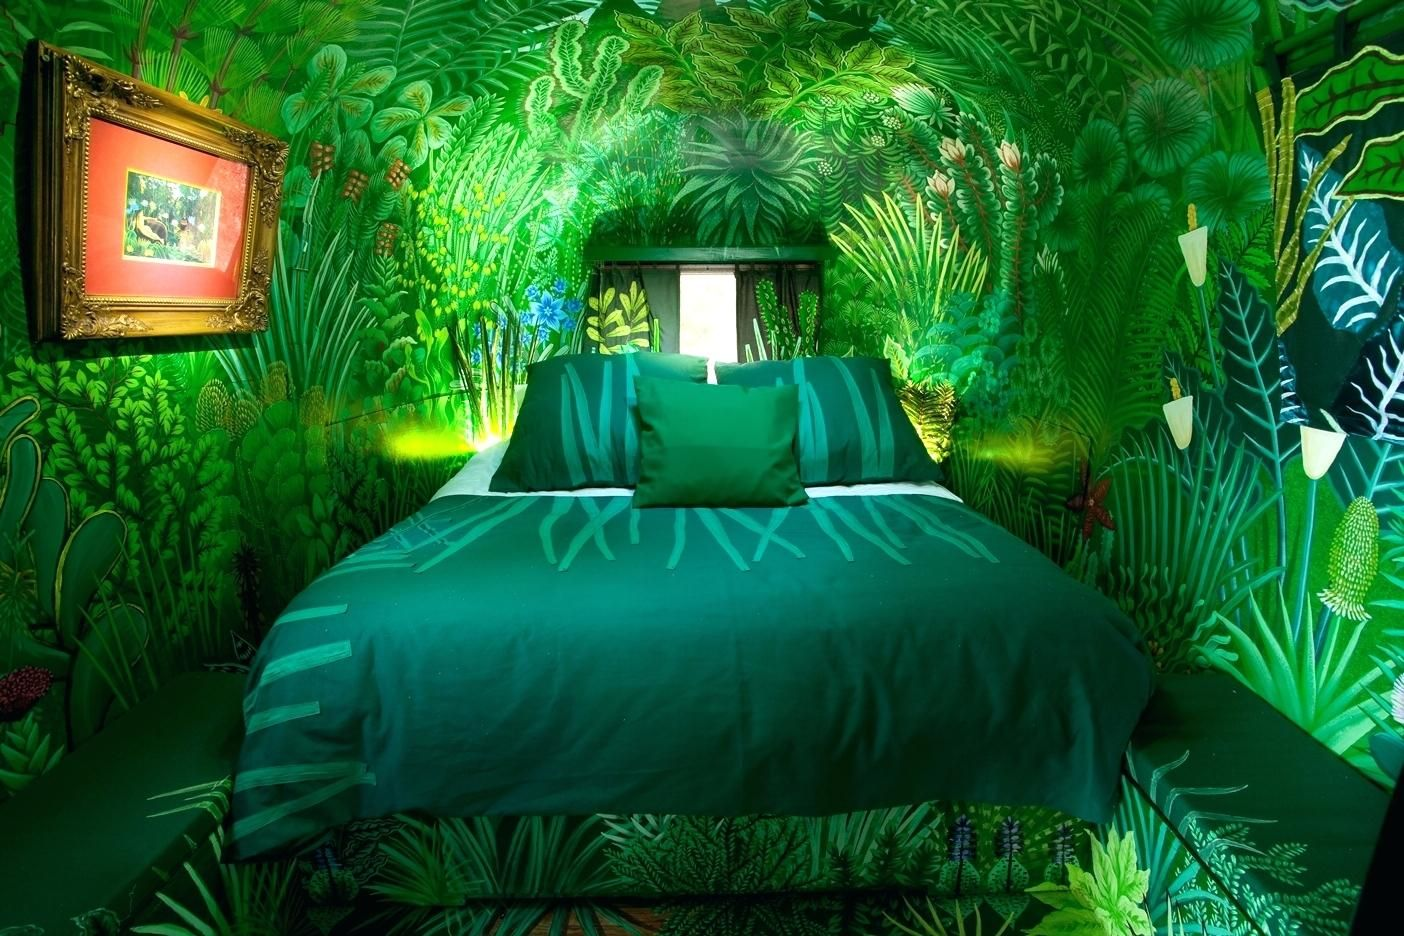 Forest Bedroom Wallpaper For Walls Jungle Themed Bedrooms Kids Old Mac Safari  Decorating Ideas Living Room